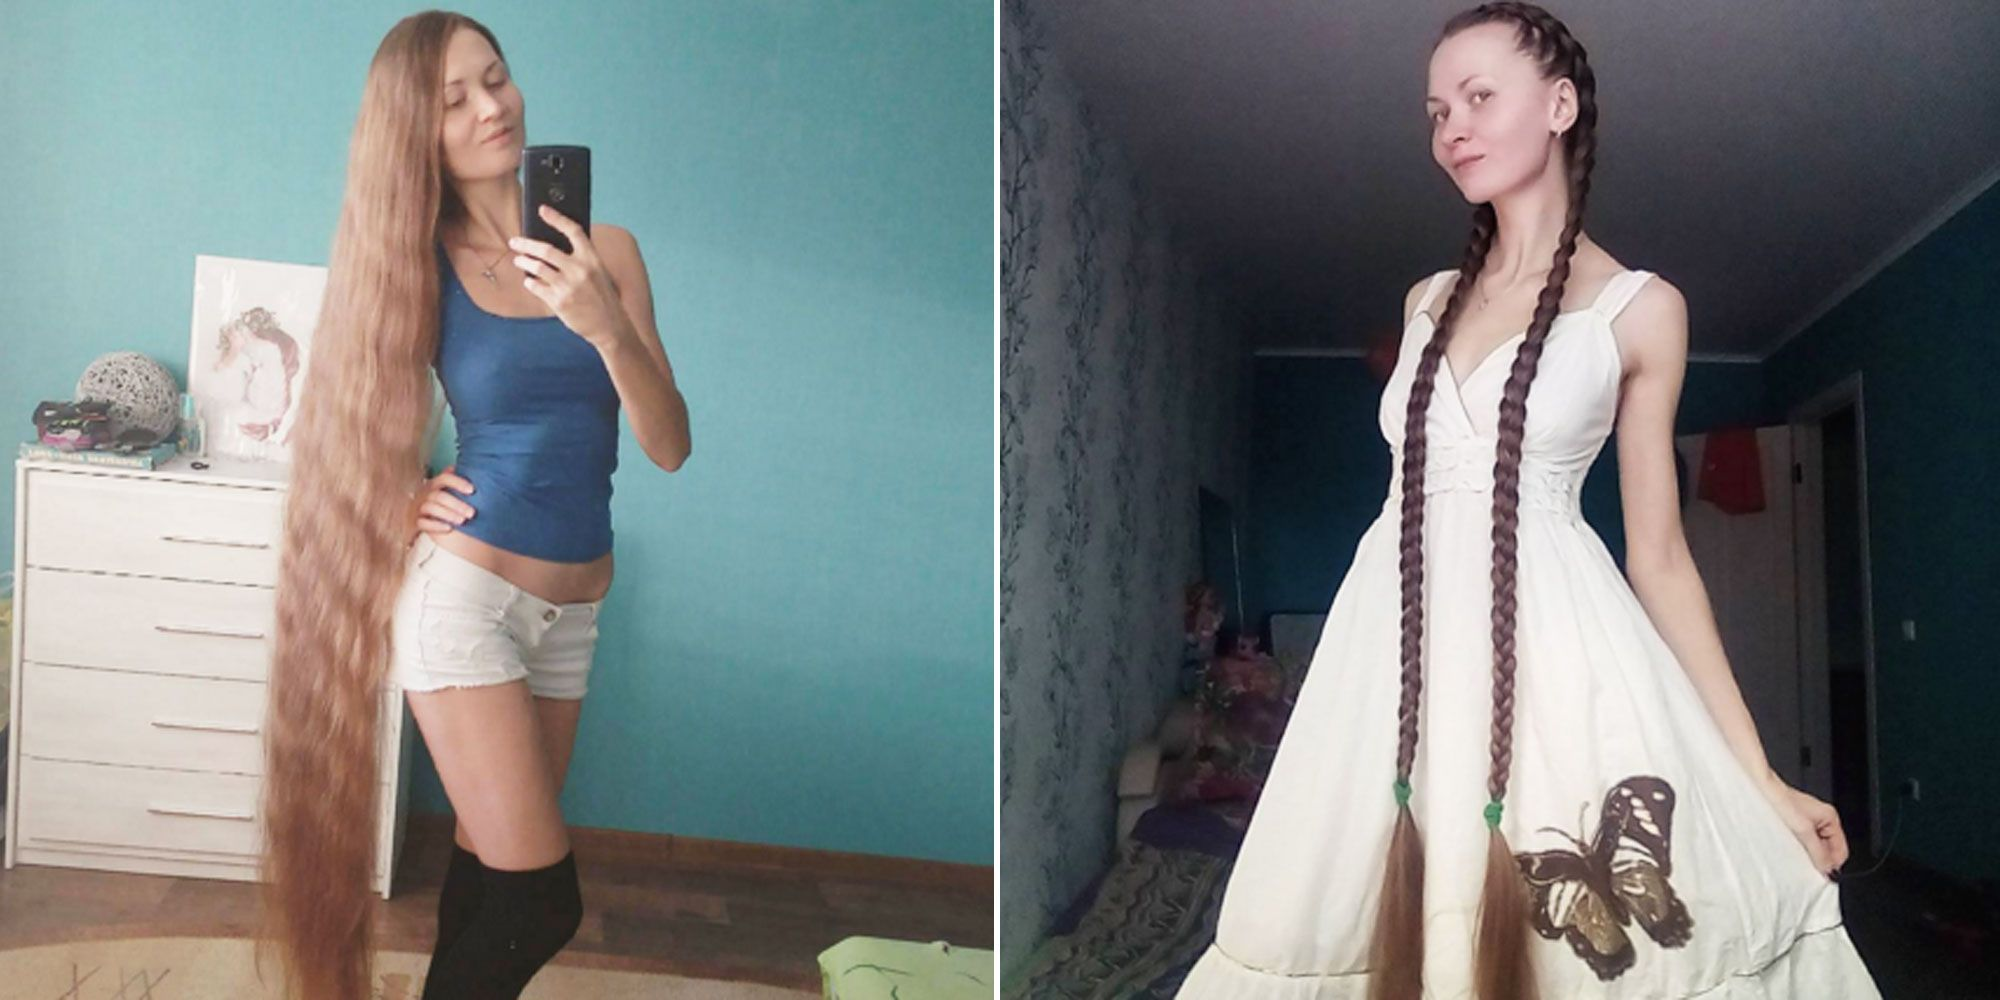 Move Over, Human Barbie: The Real Rapunzel Is Here